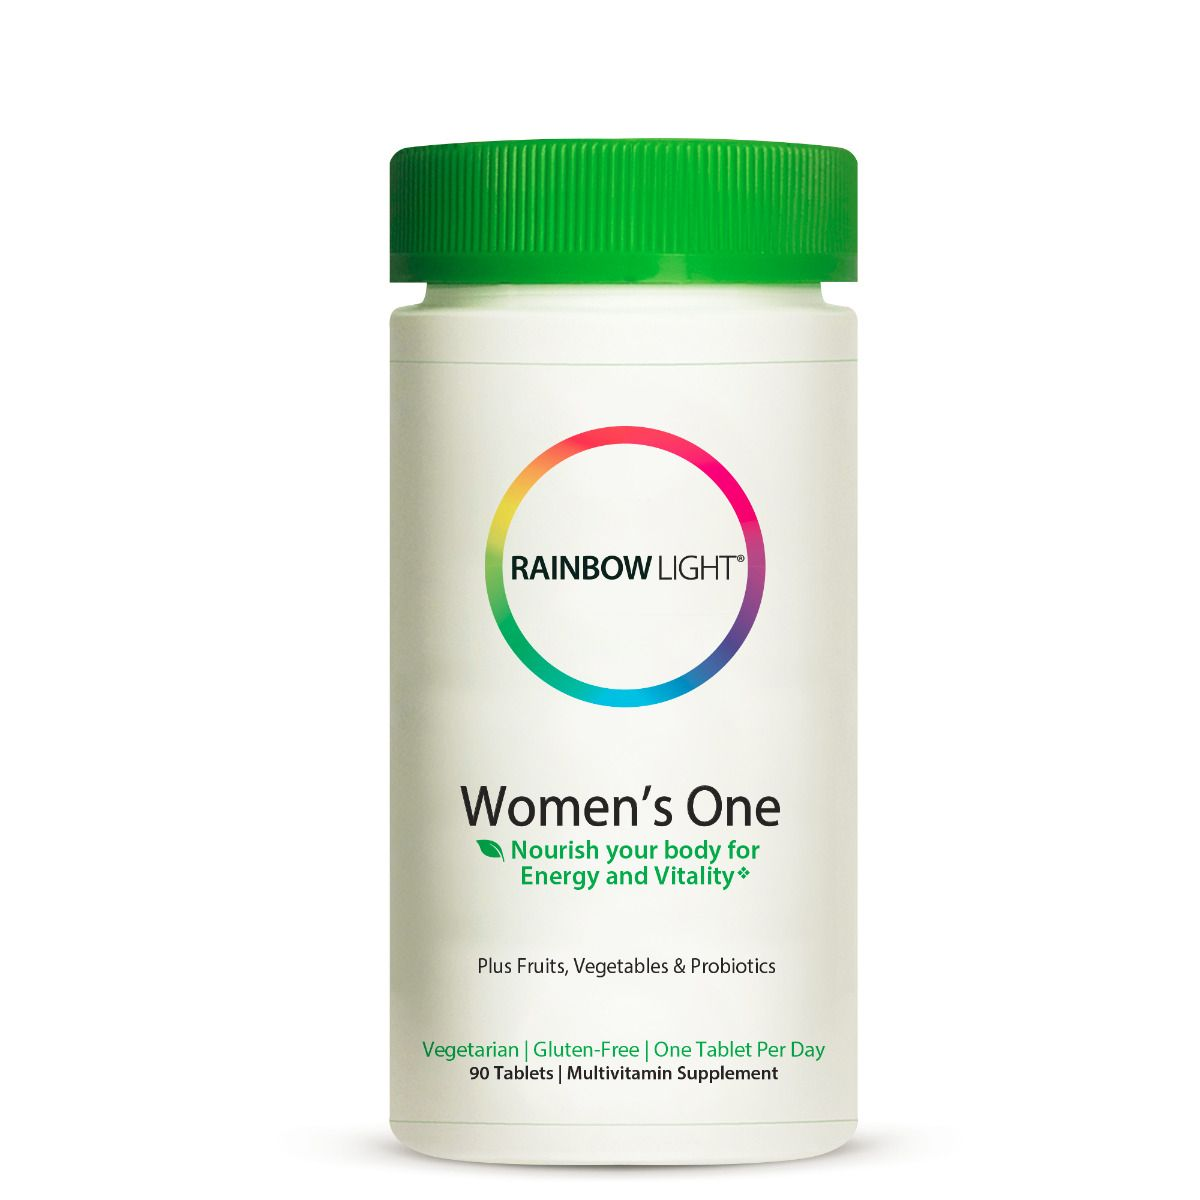 Bottle of Rainbow Light Women's One